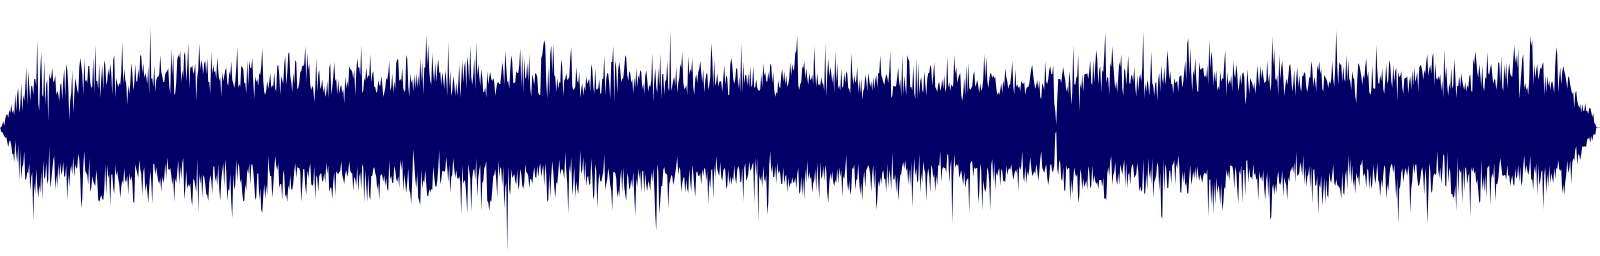 waveform of track #143523